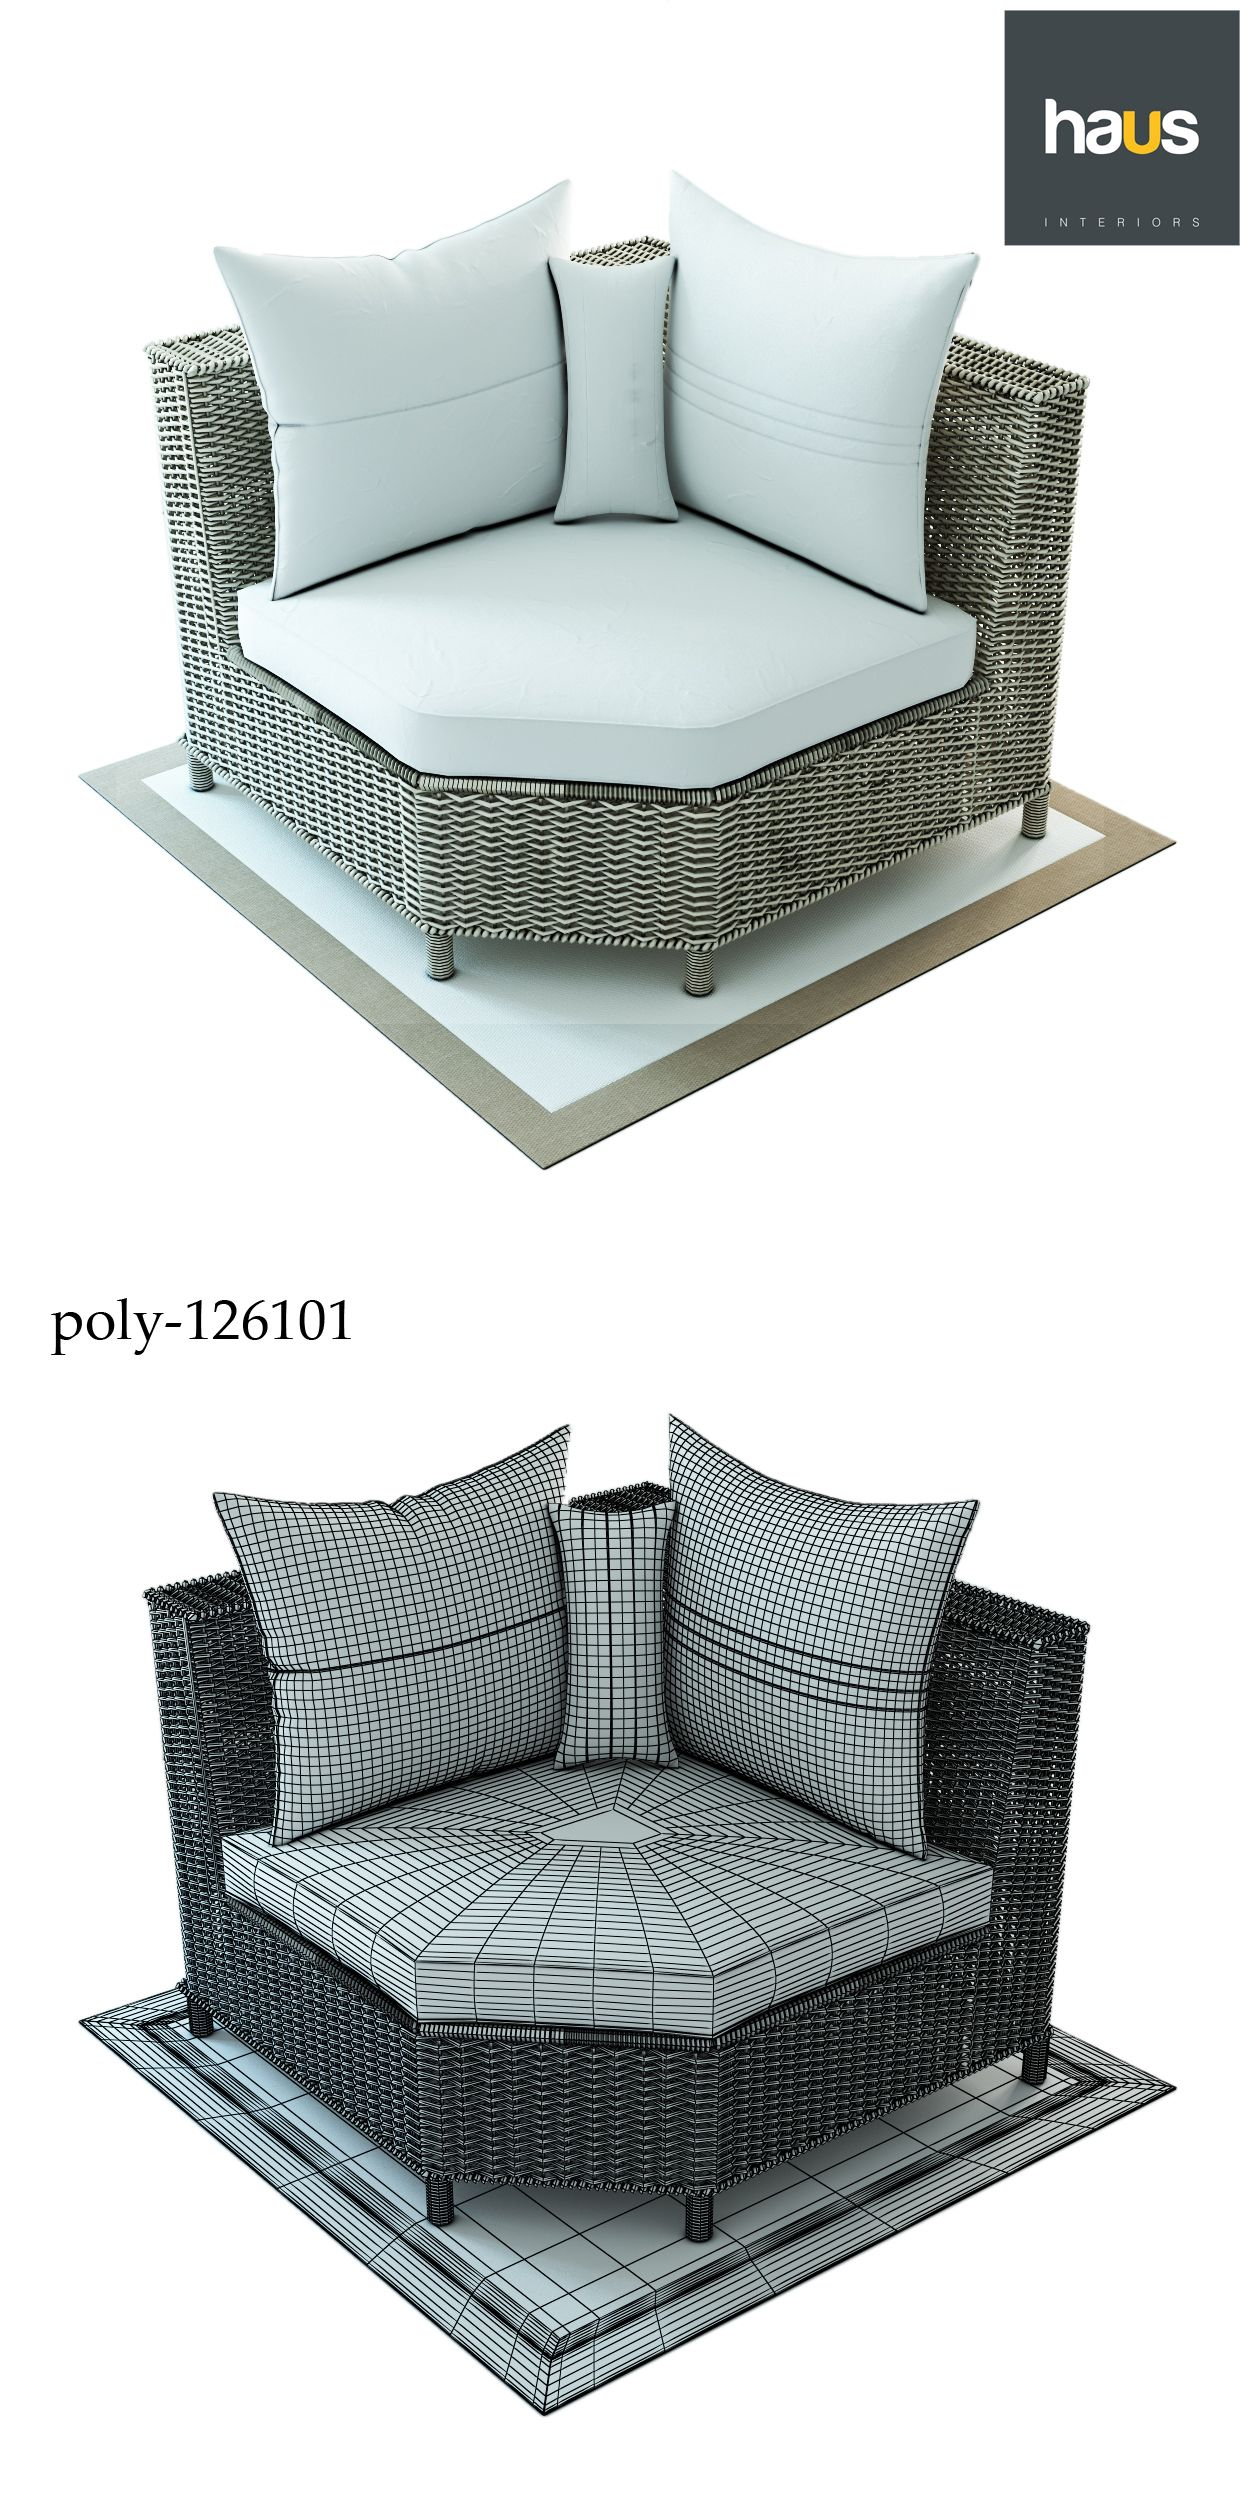 Haus Interior Corner Armchair Made Of Woven Rattan With Images Rattan Armchair